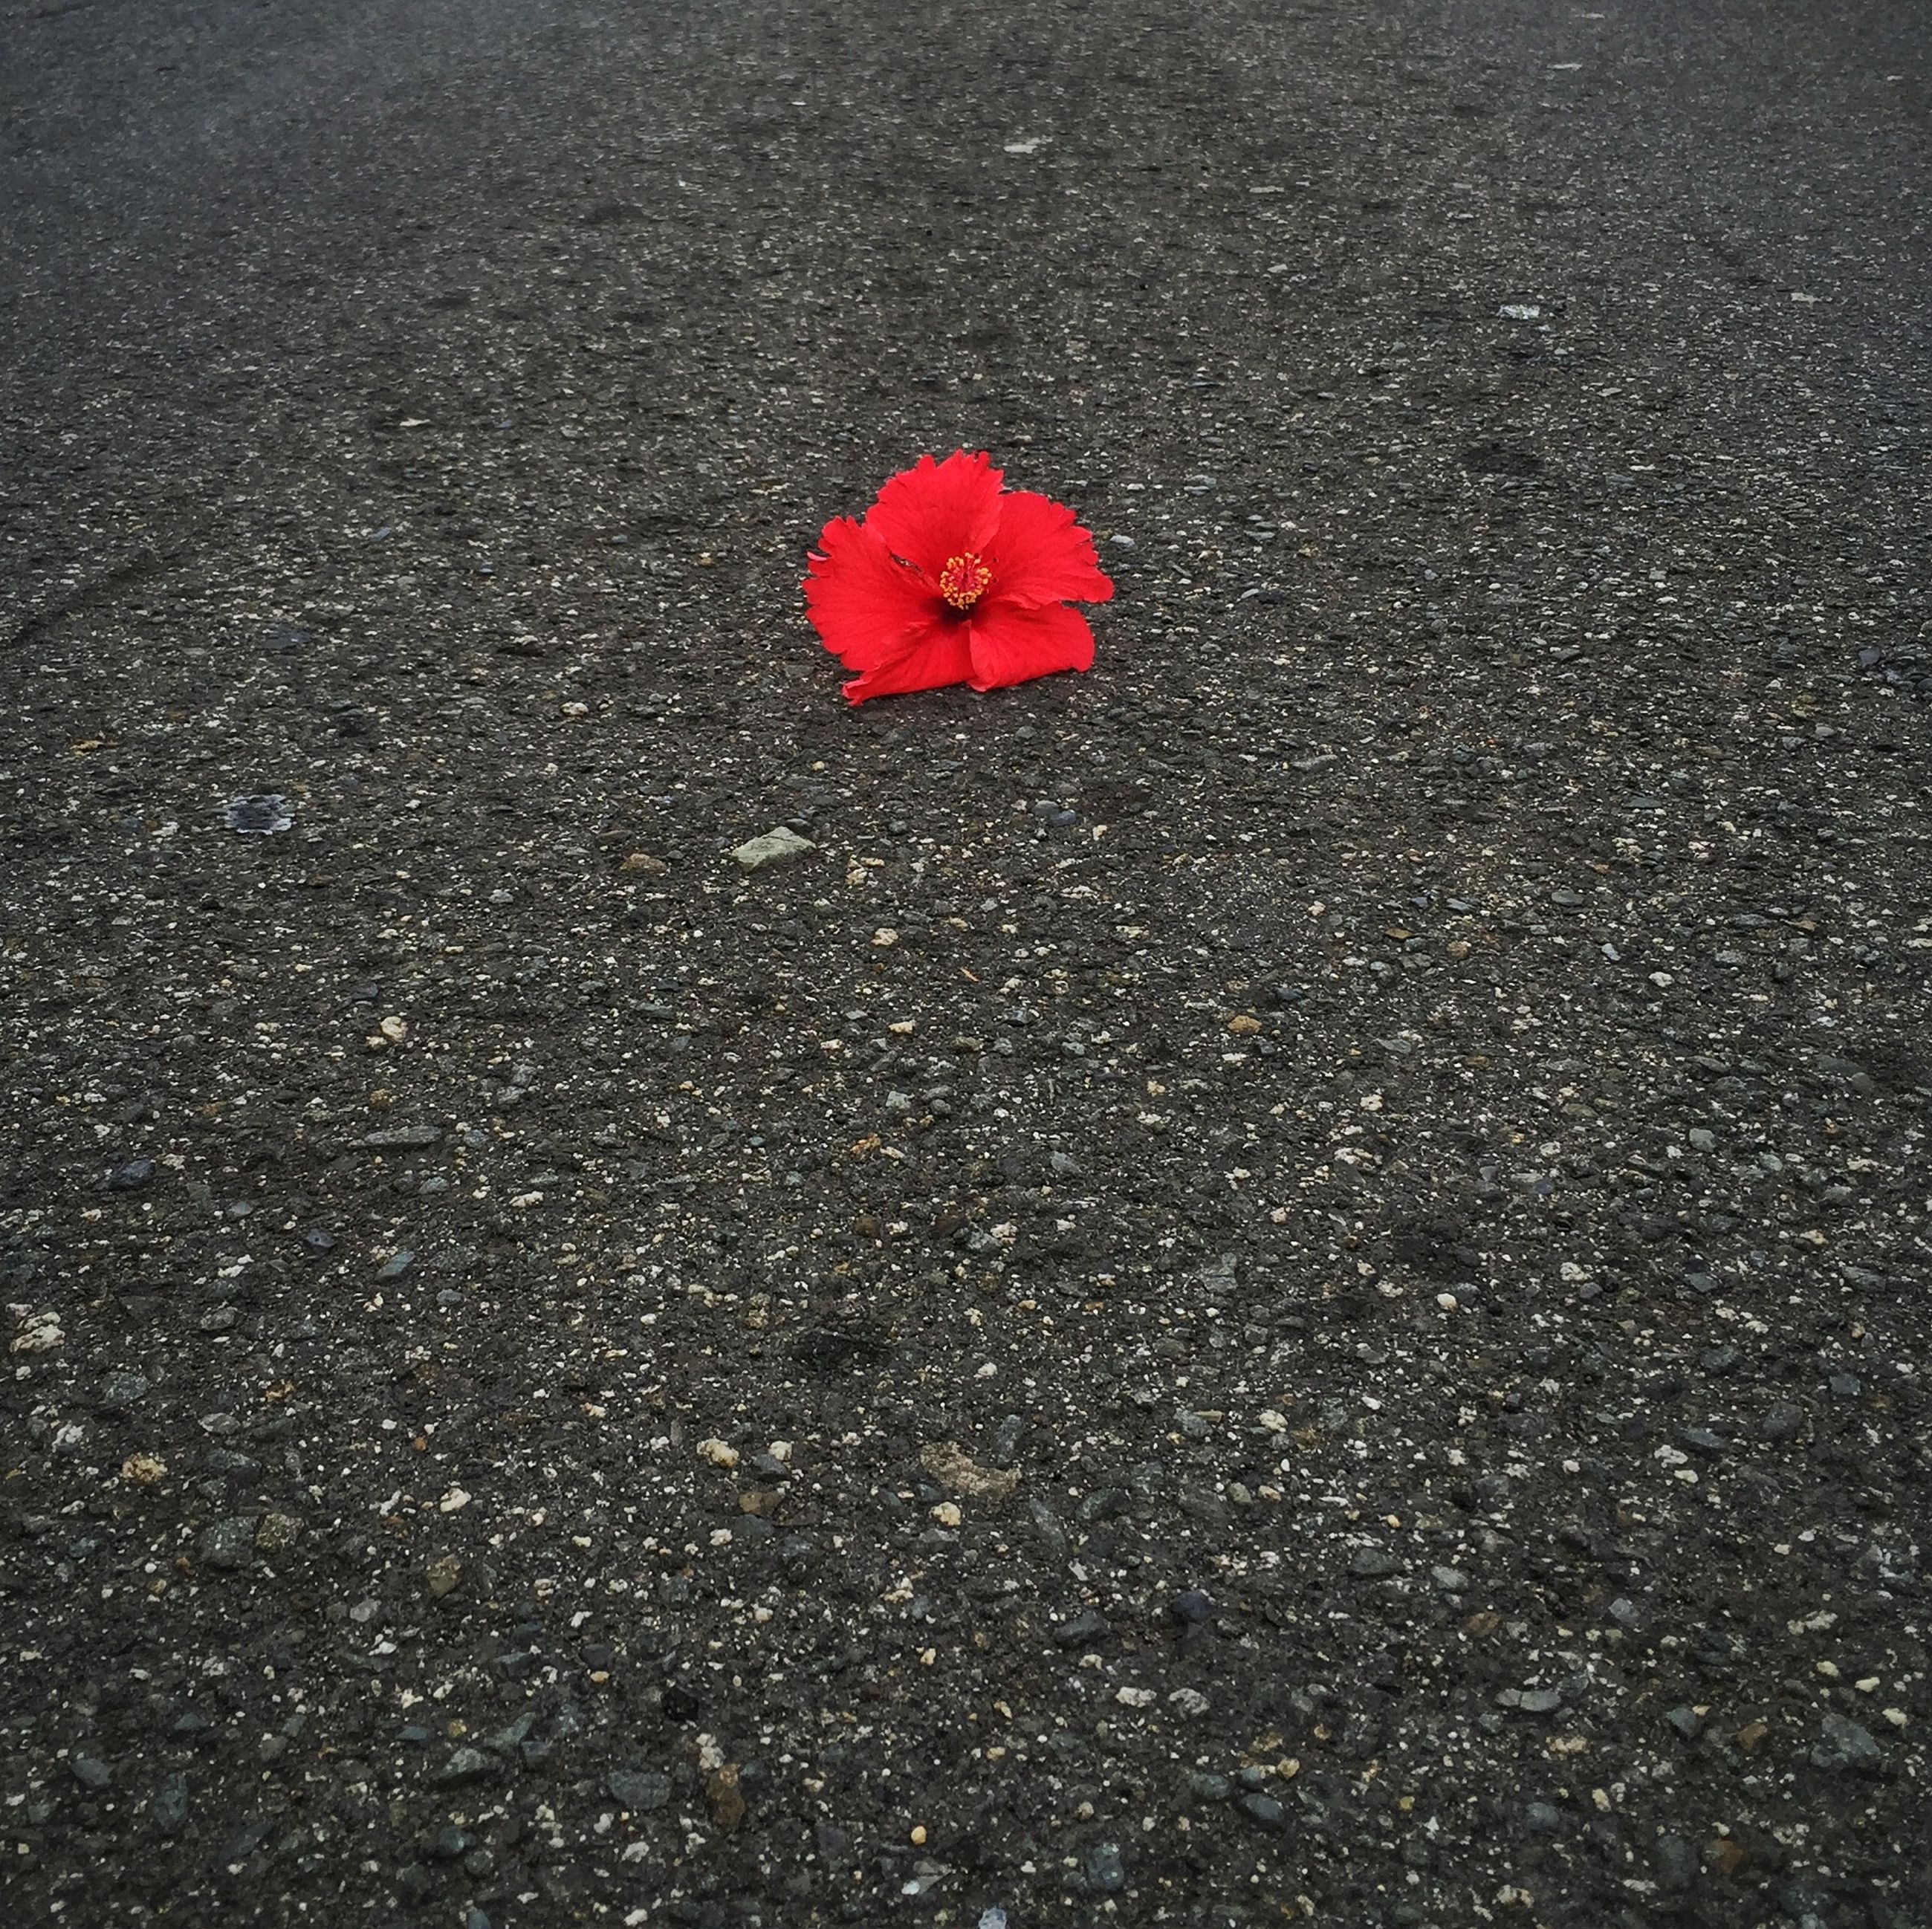 asphalt, high angle view, road, street, red, transportation, road marking, outdoors, nature, day, flower, leaf, no people, season, fragility, close-up, textured, petal, pink color, beauty in nature